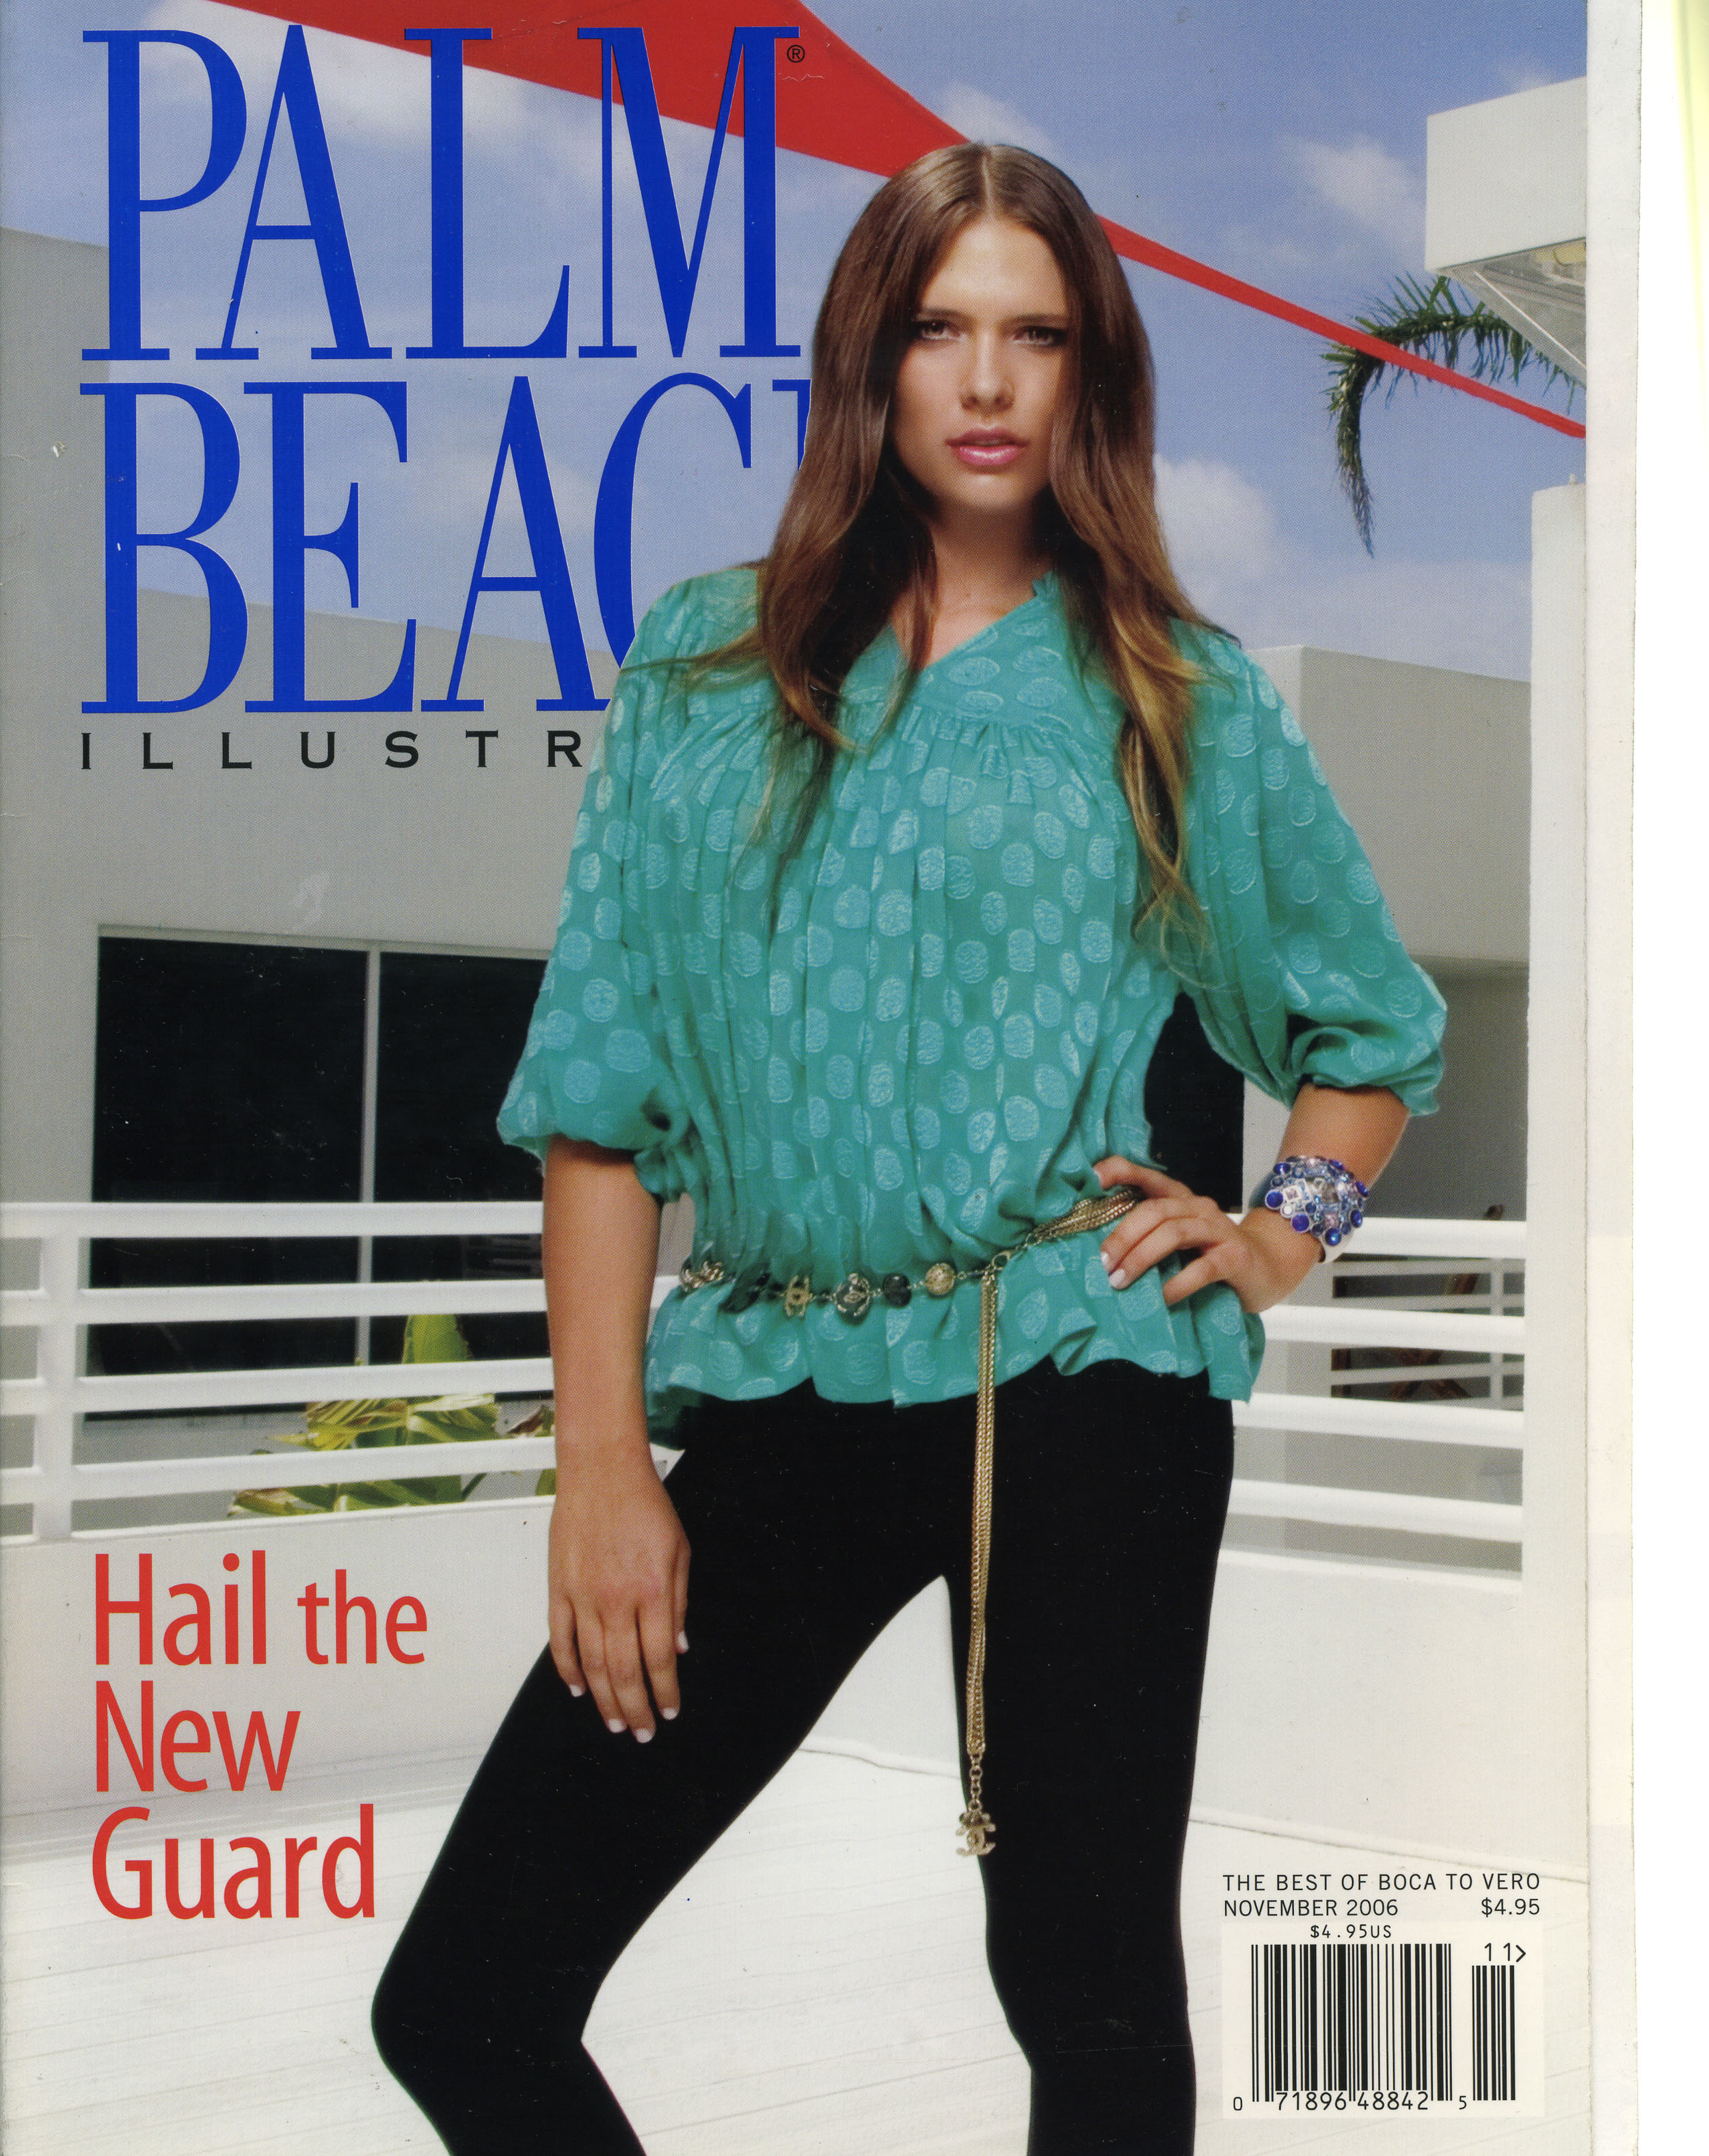 PALM BEACH 1106 COVER.jpg